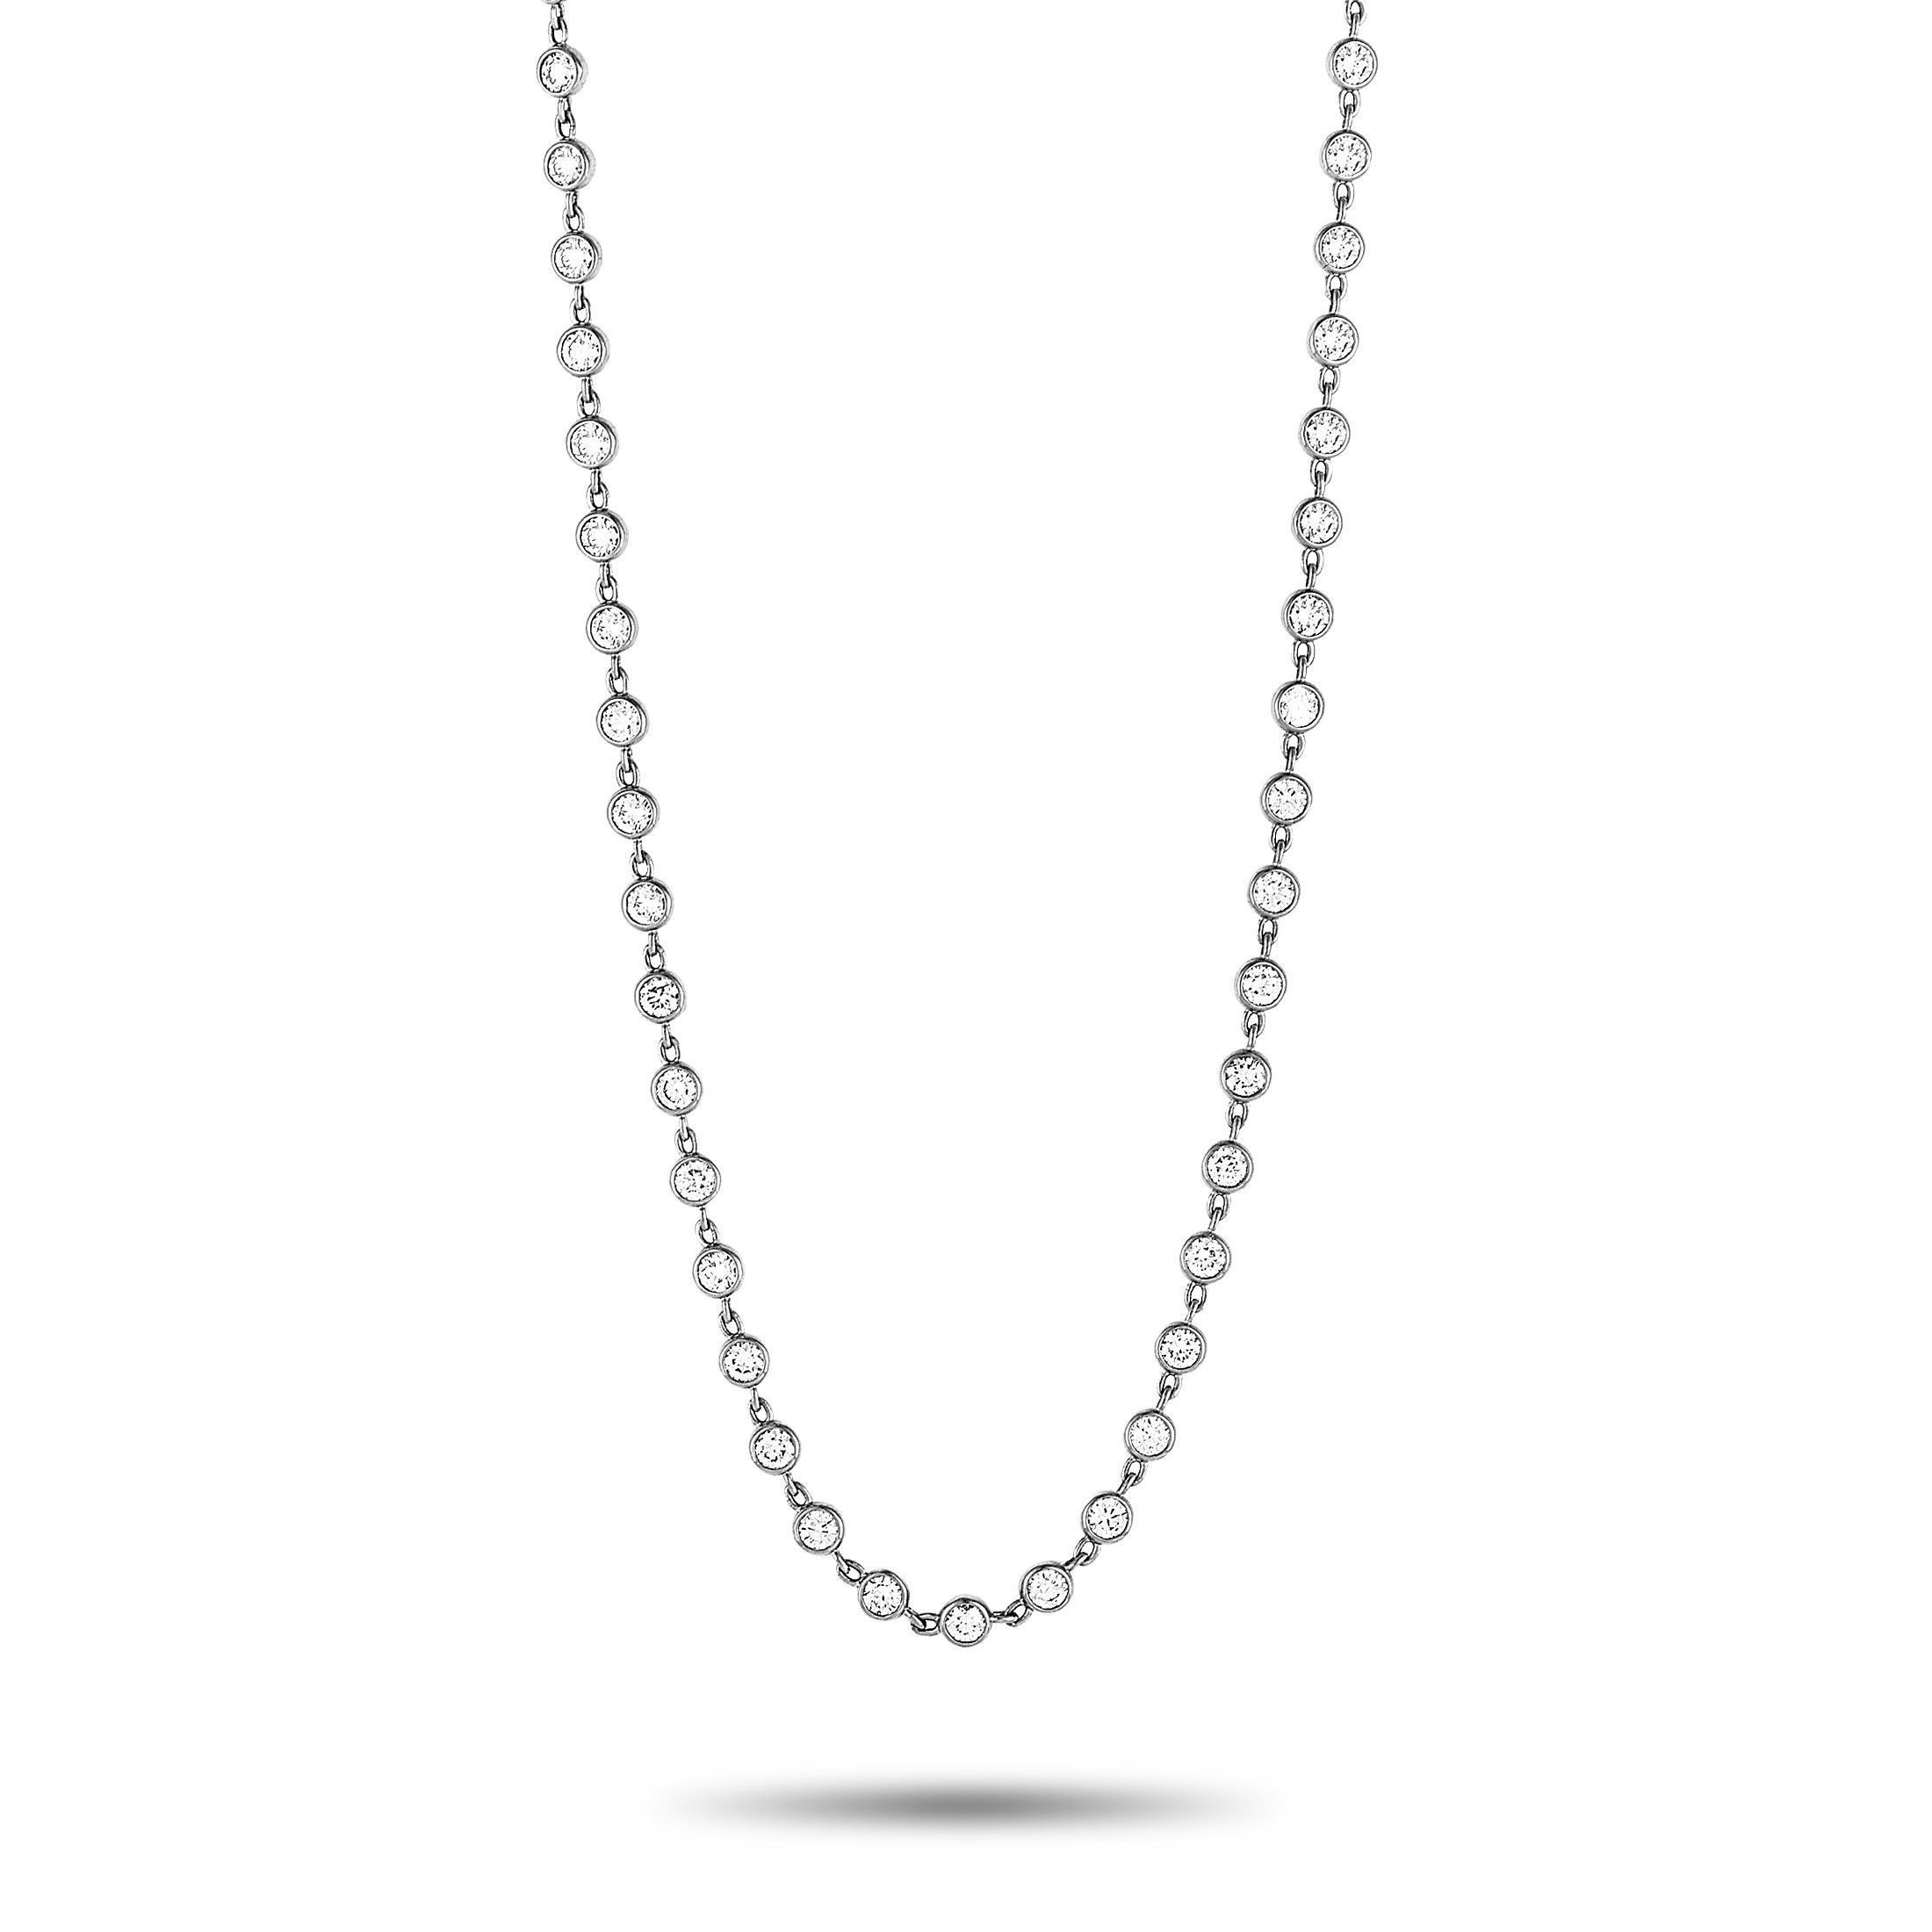 Lb Exclusive 18k White Gold Diamond Sautoir Necklace For Most Recently Released Diamond Sautoir Necklaces In Yellow Gold (View 9 of 25)